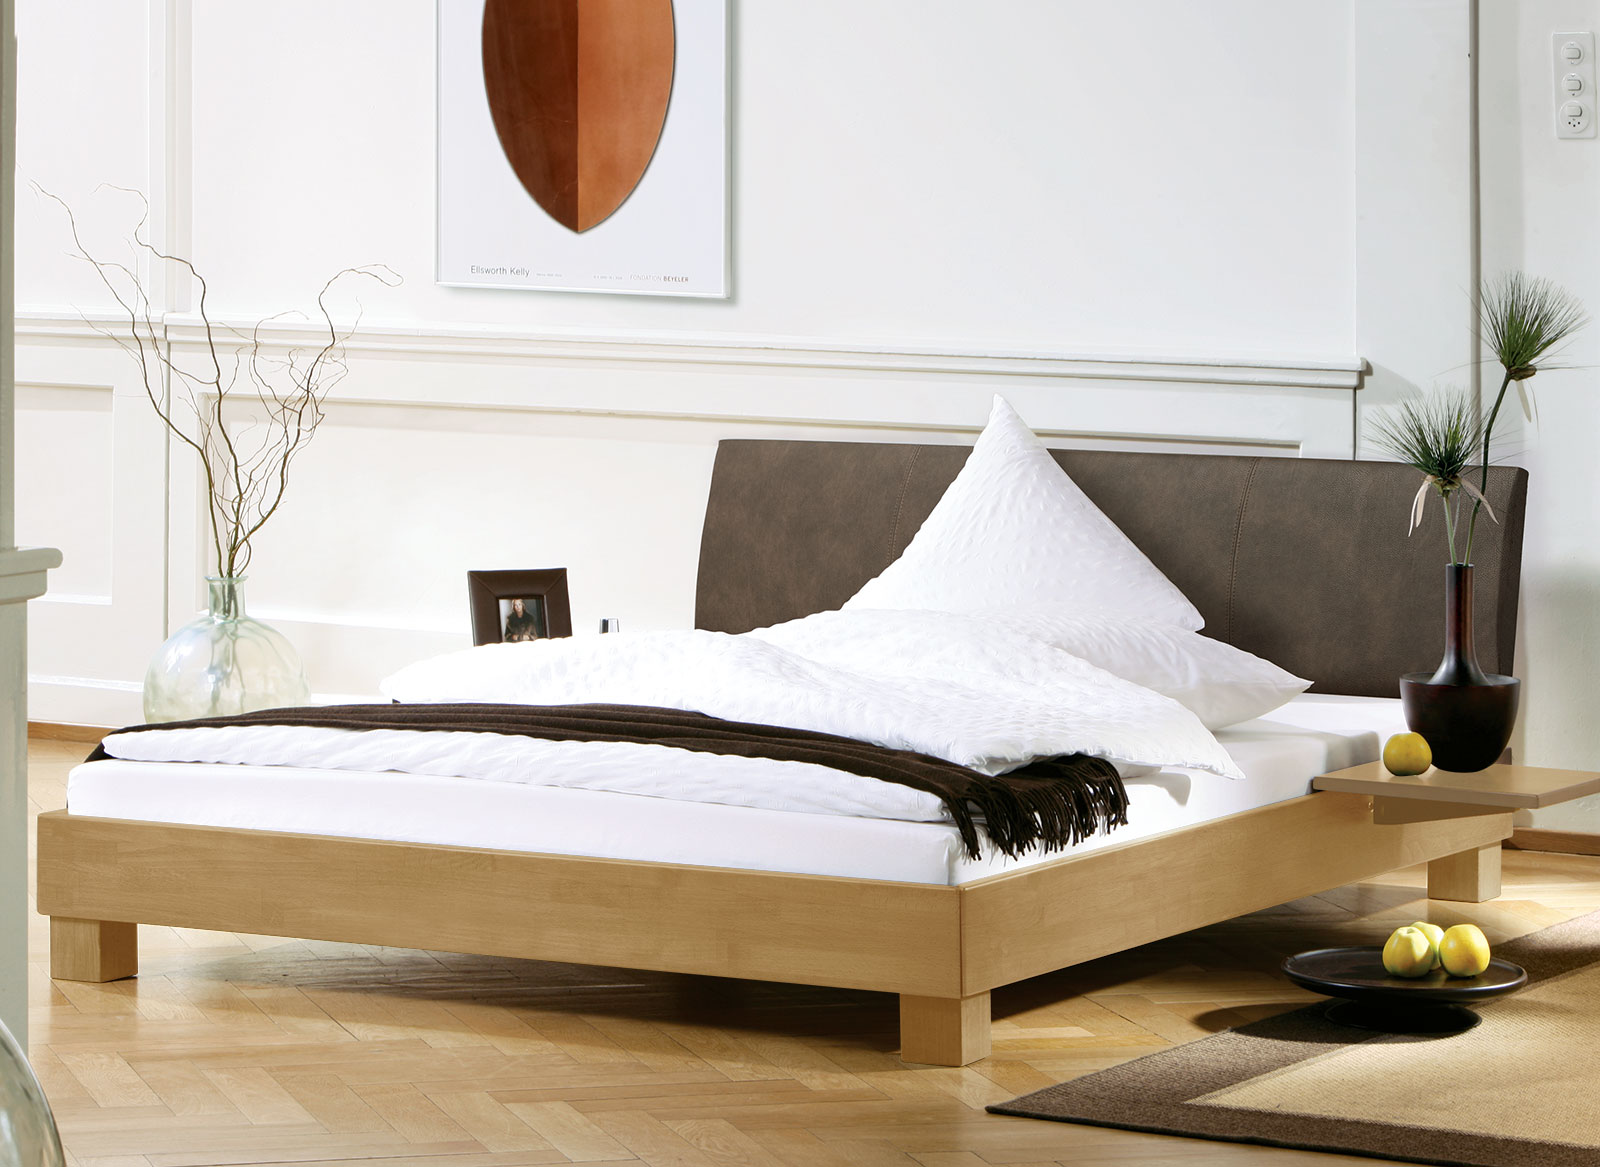 schlafzimmer bett deko inspiration f r die gestaltung der besten r ume. Black Bedroom Furniture Sets. Home Design Ideas